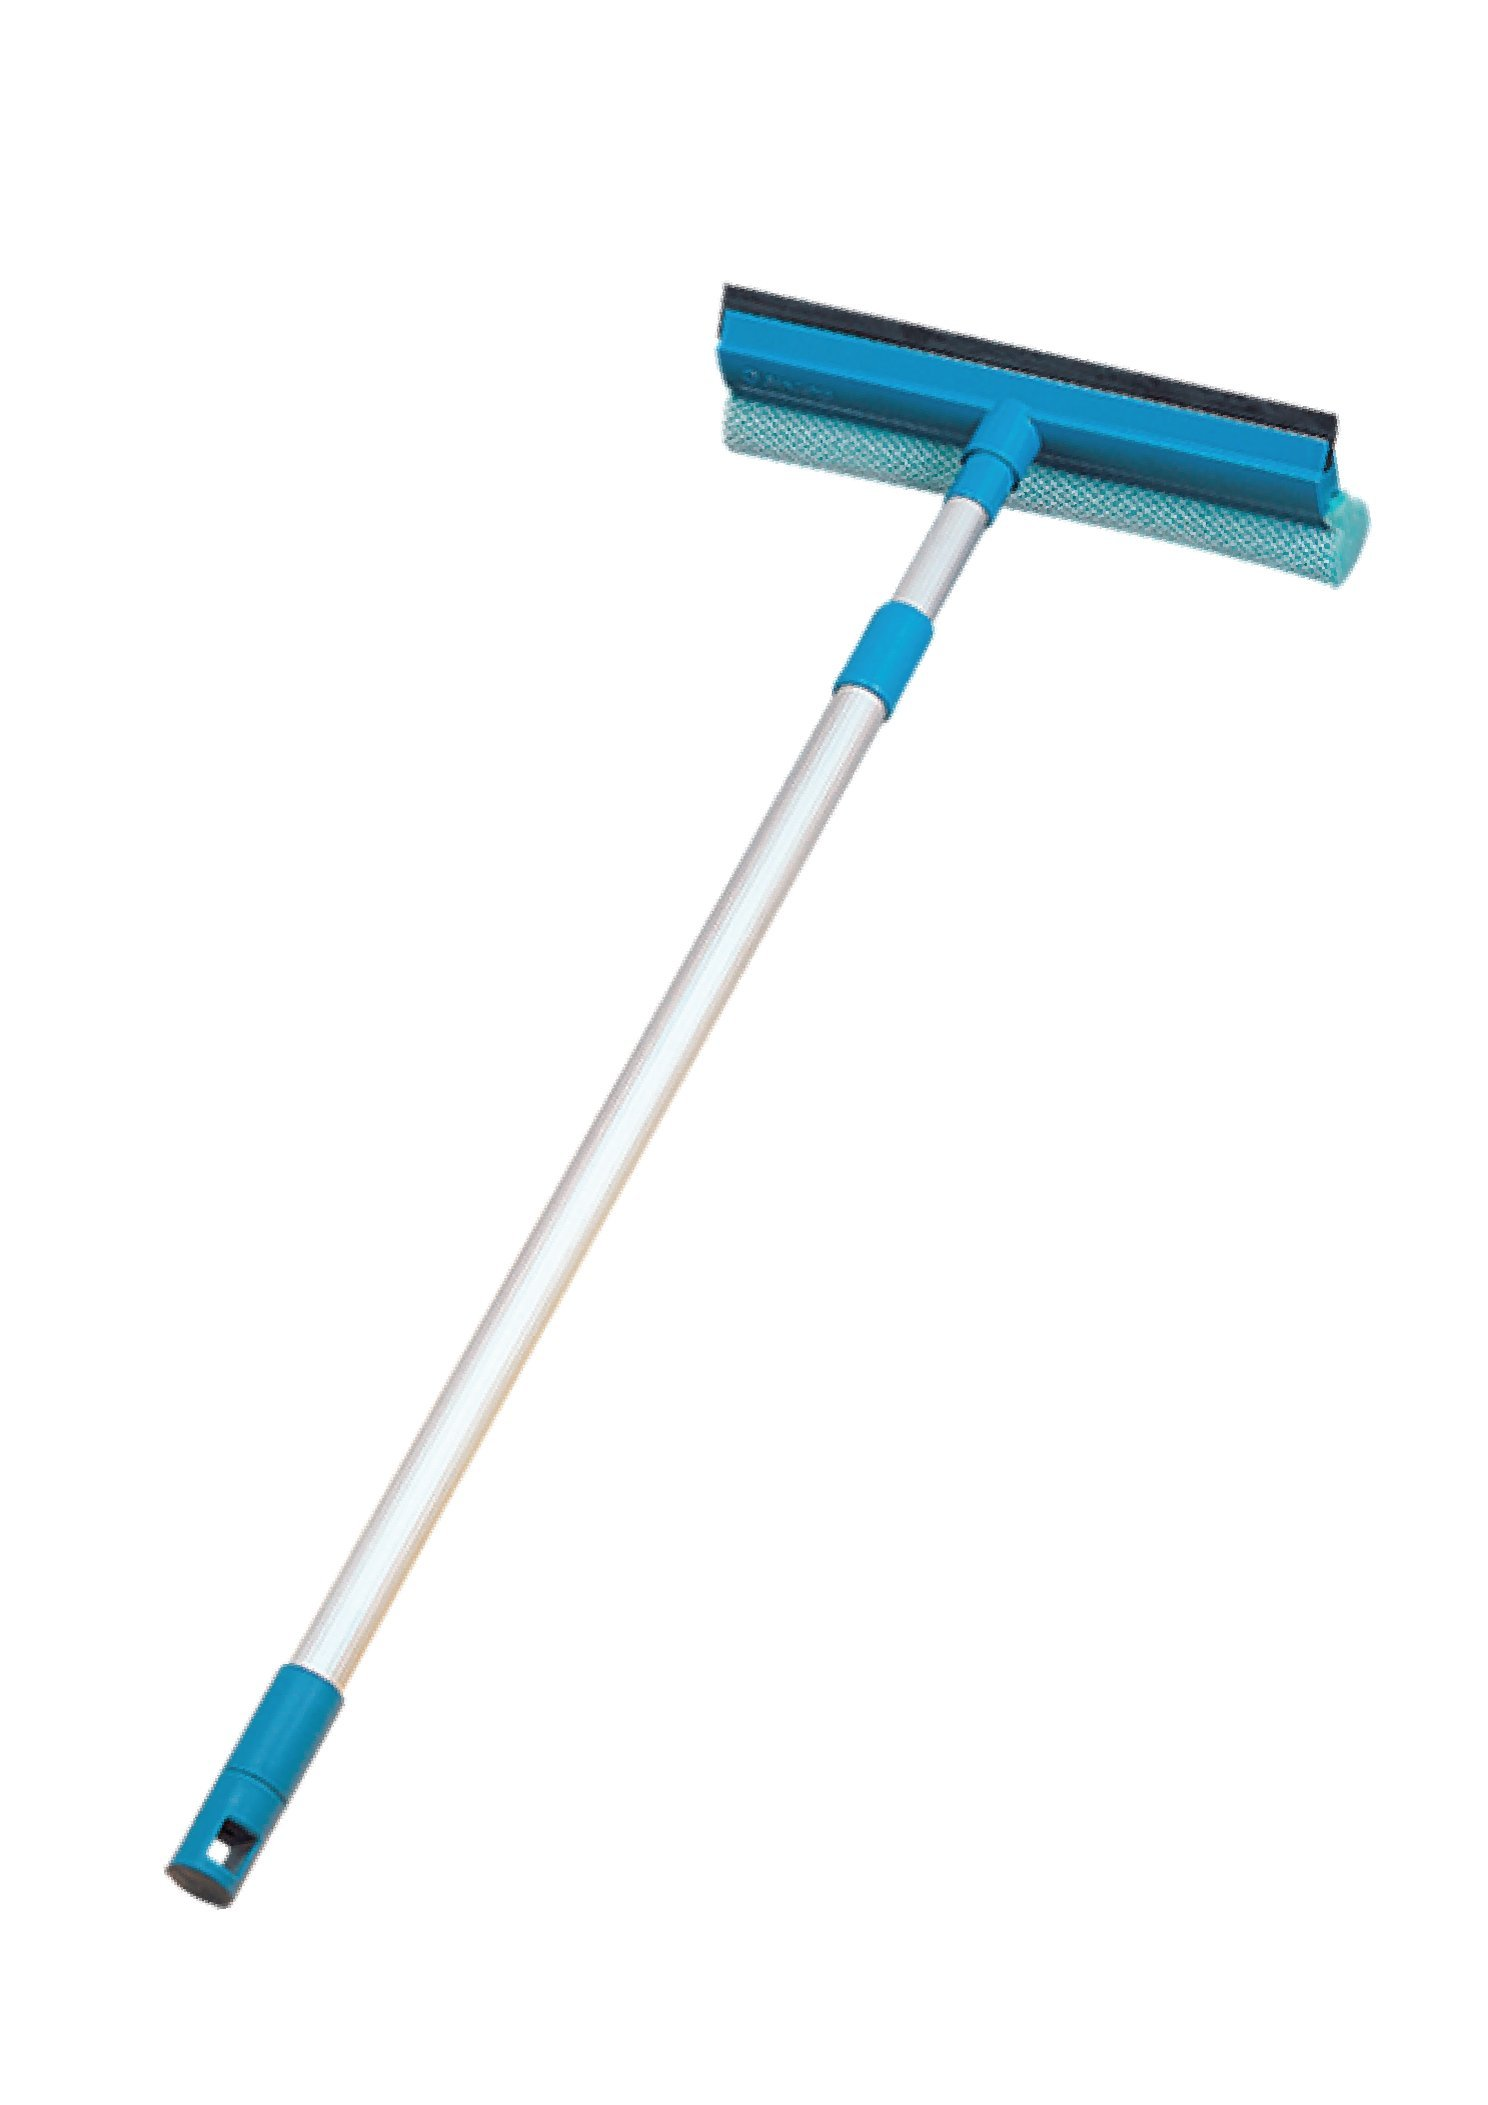 UPIT Squeegee Window Cleaner, Maximum Length 100cm(40inch)(3.2ft)